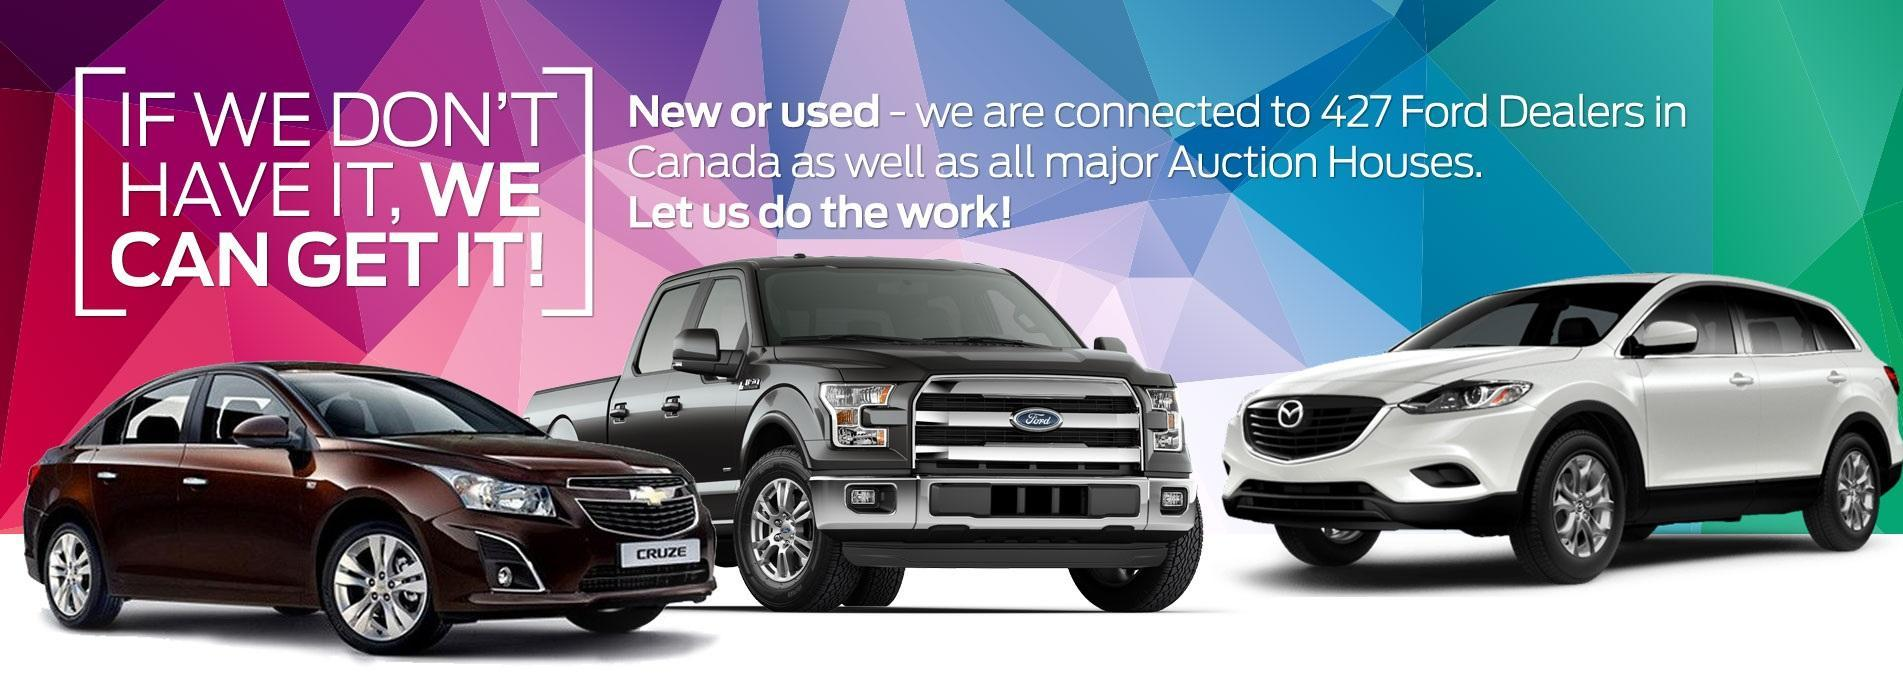 Ford If We Don't Have It, We Can Get It image